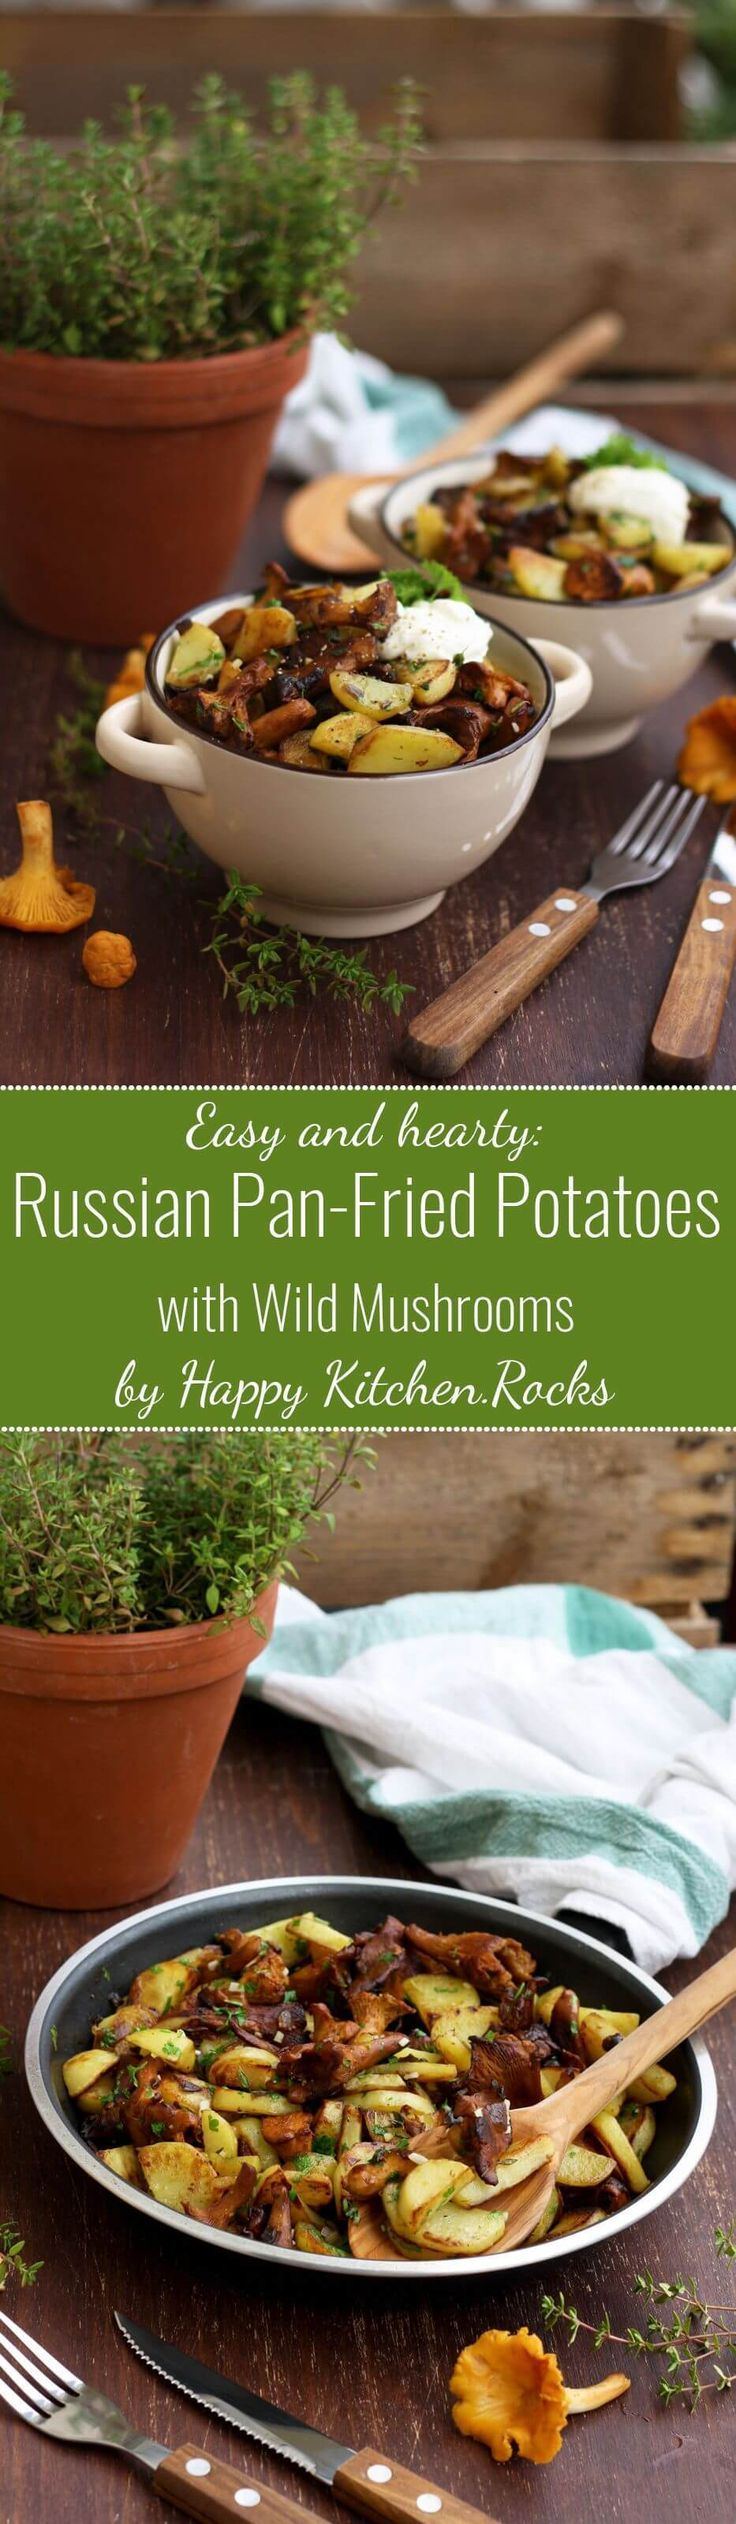 43 best russian food recipes images on pinterest russian recipes russian pan fried potatoes with wild mushrooms onions garlic and herbs are super flavorful hearty and comforting this easy step by step recipe only forumfinder Image collections